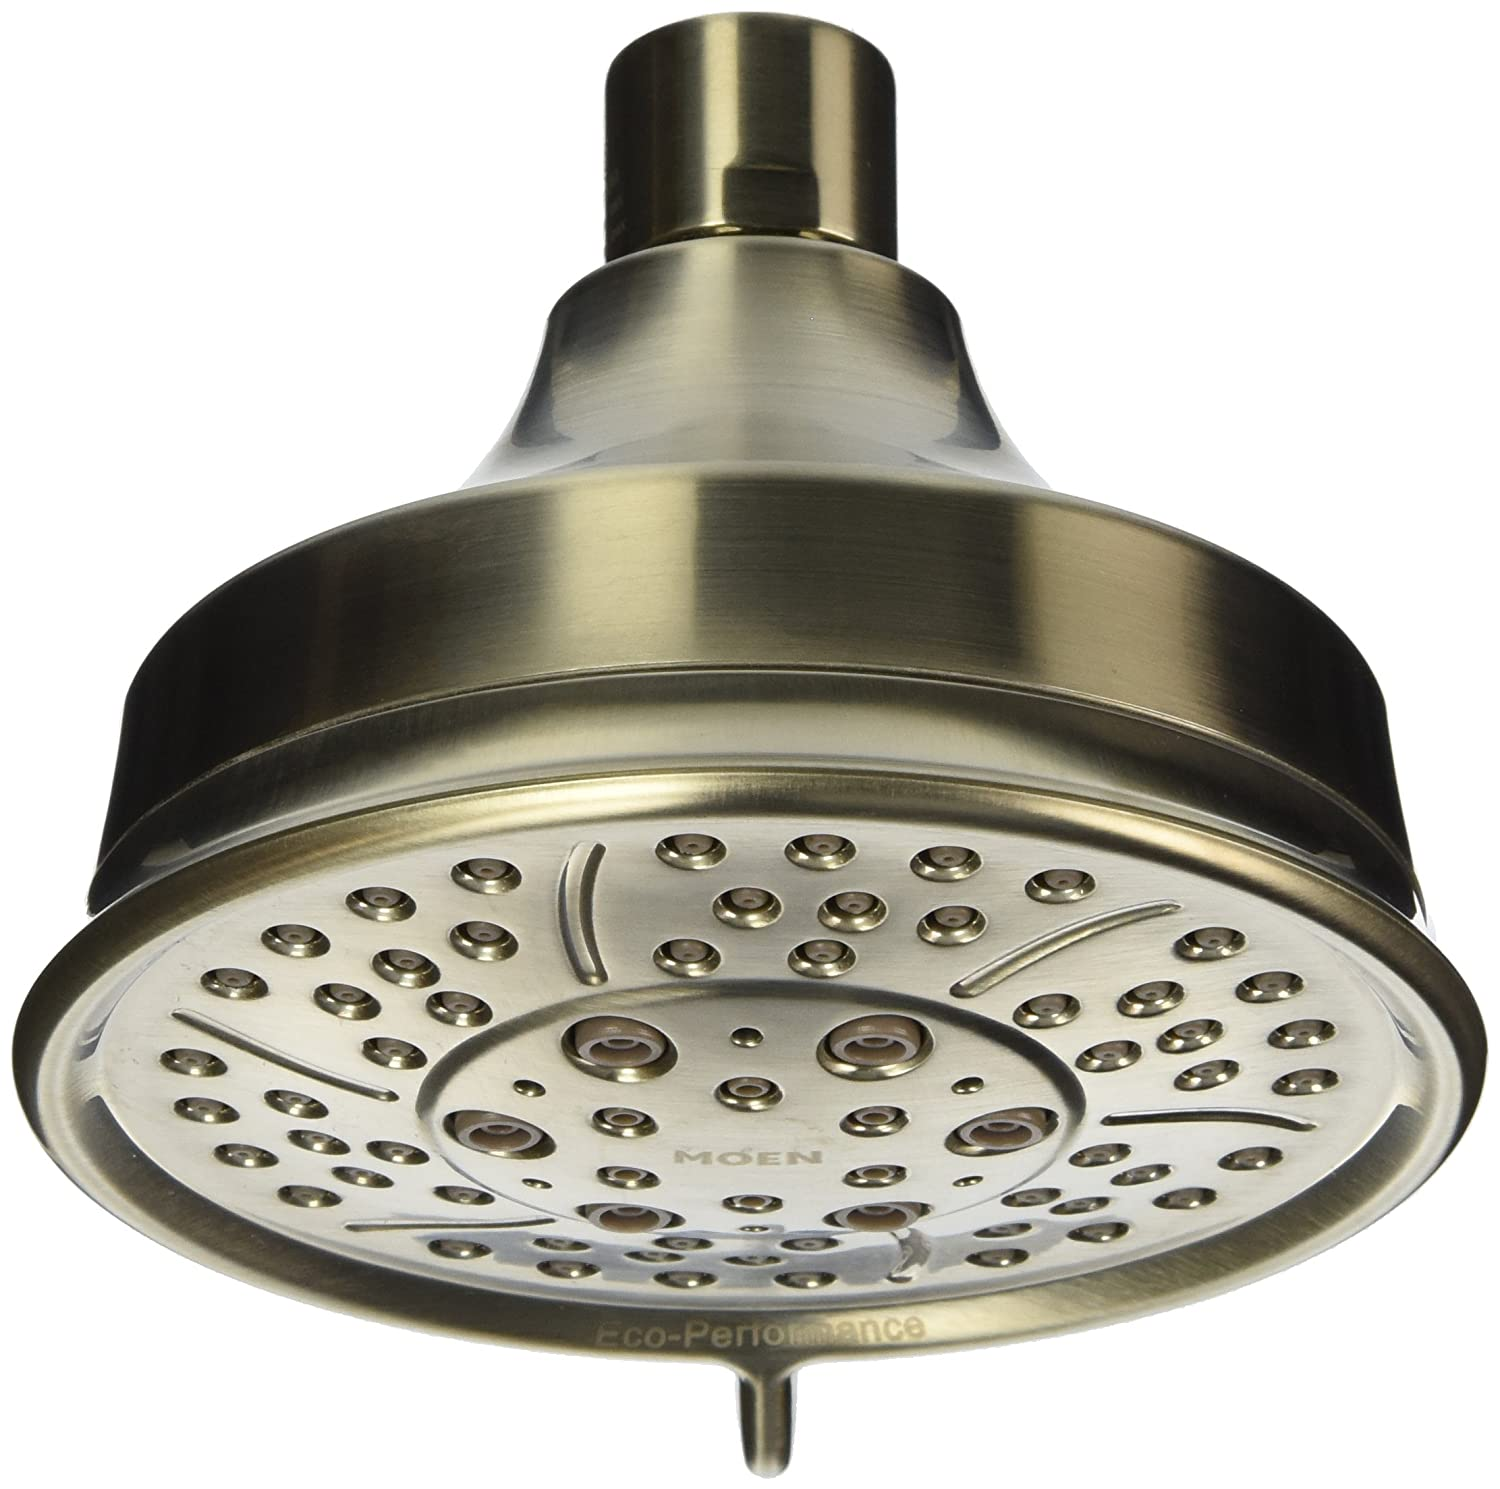 Moen 3638EP Four-Function 4-3/8-Inch Diameter Showerhead, Chrome